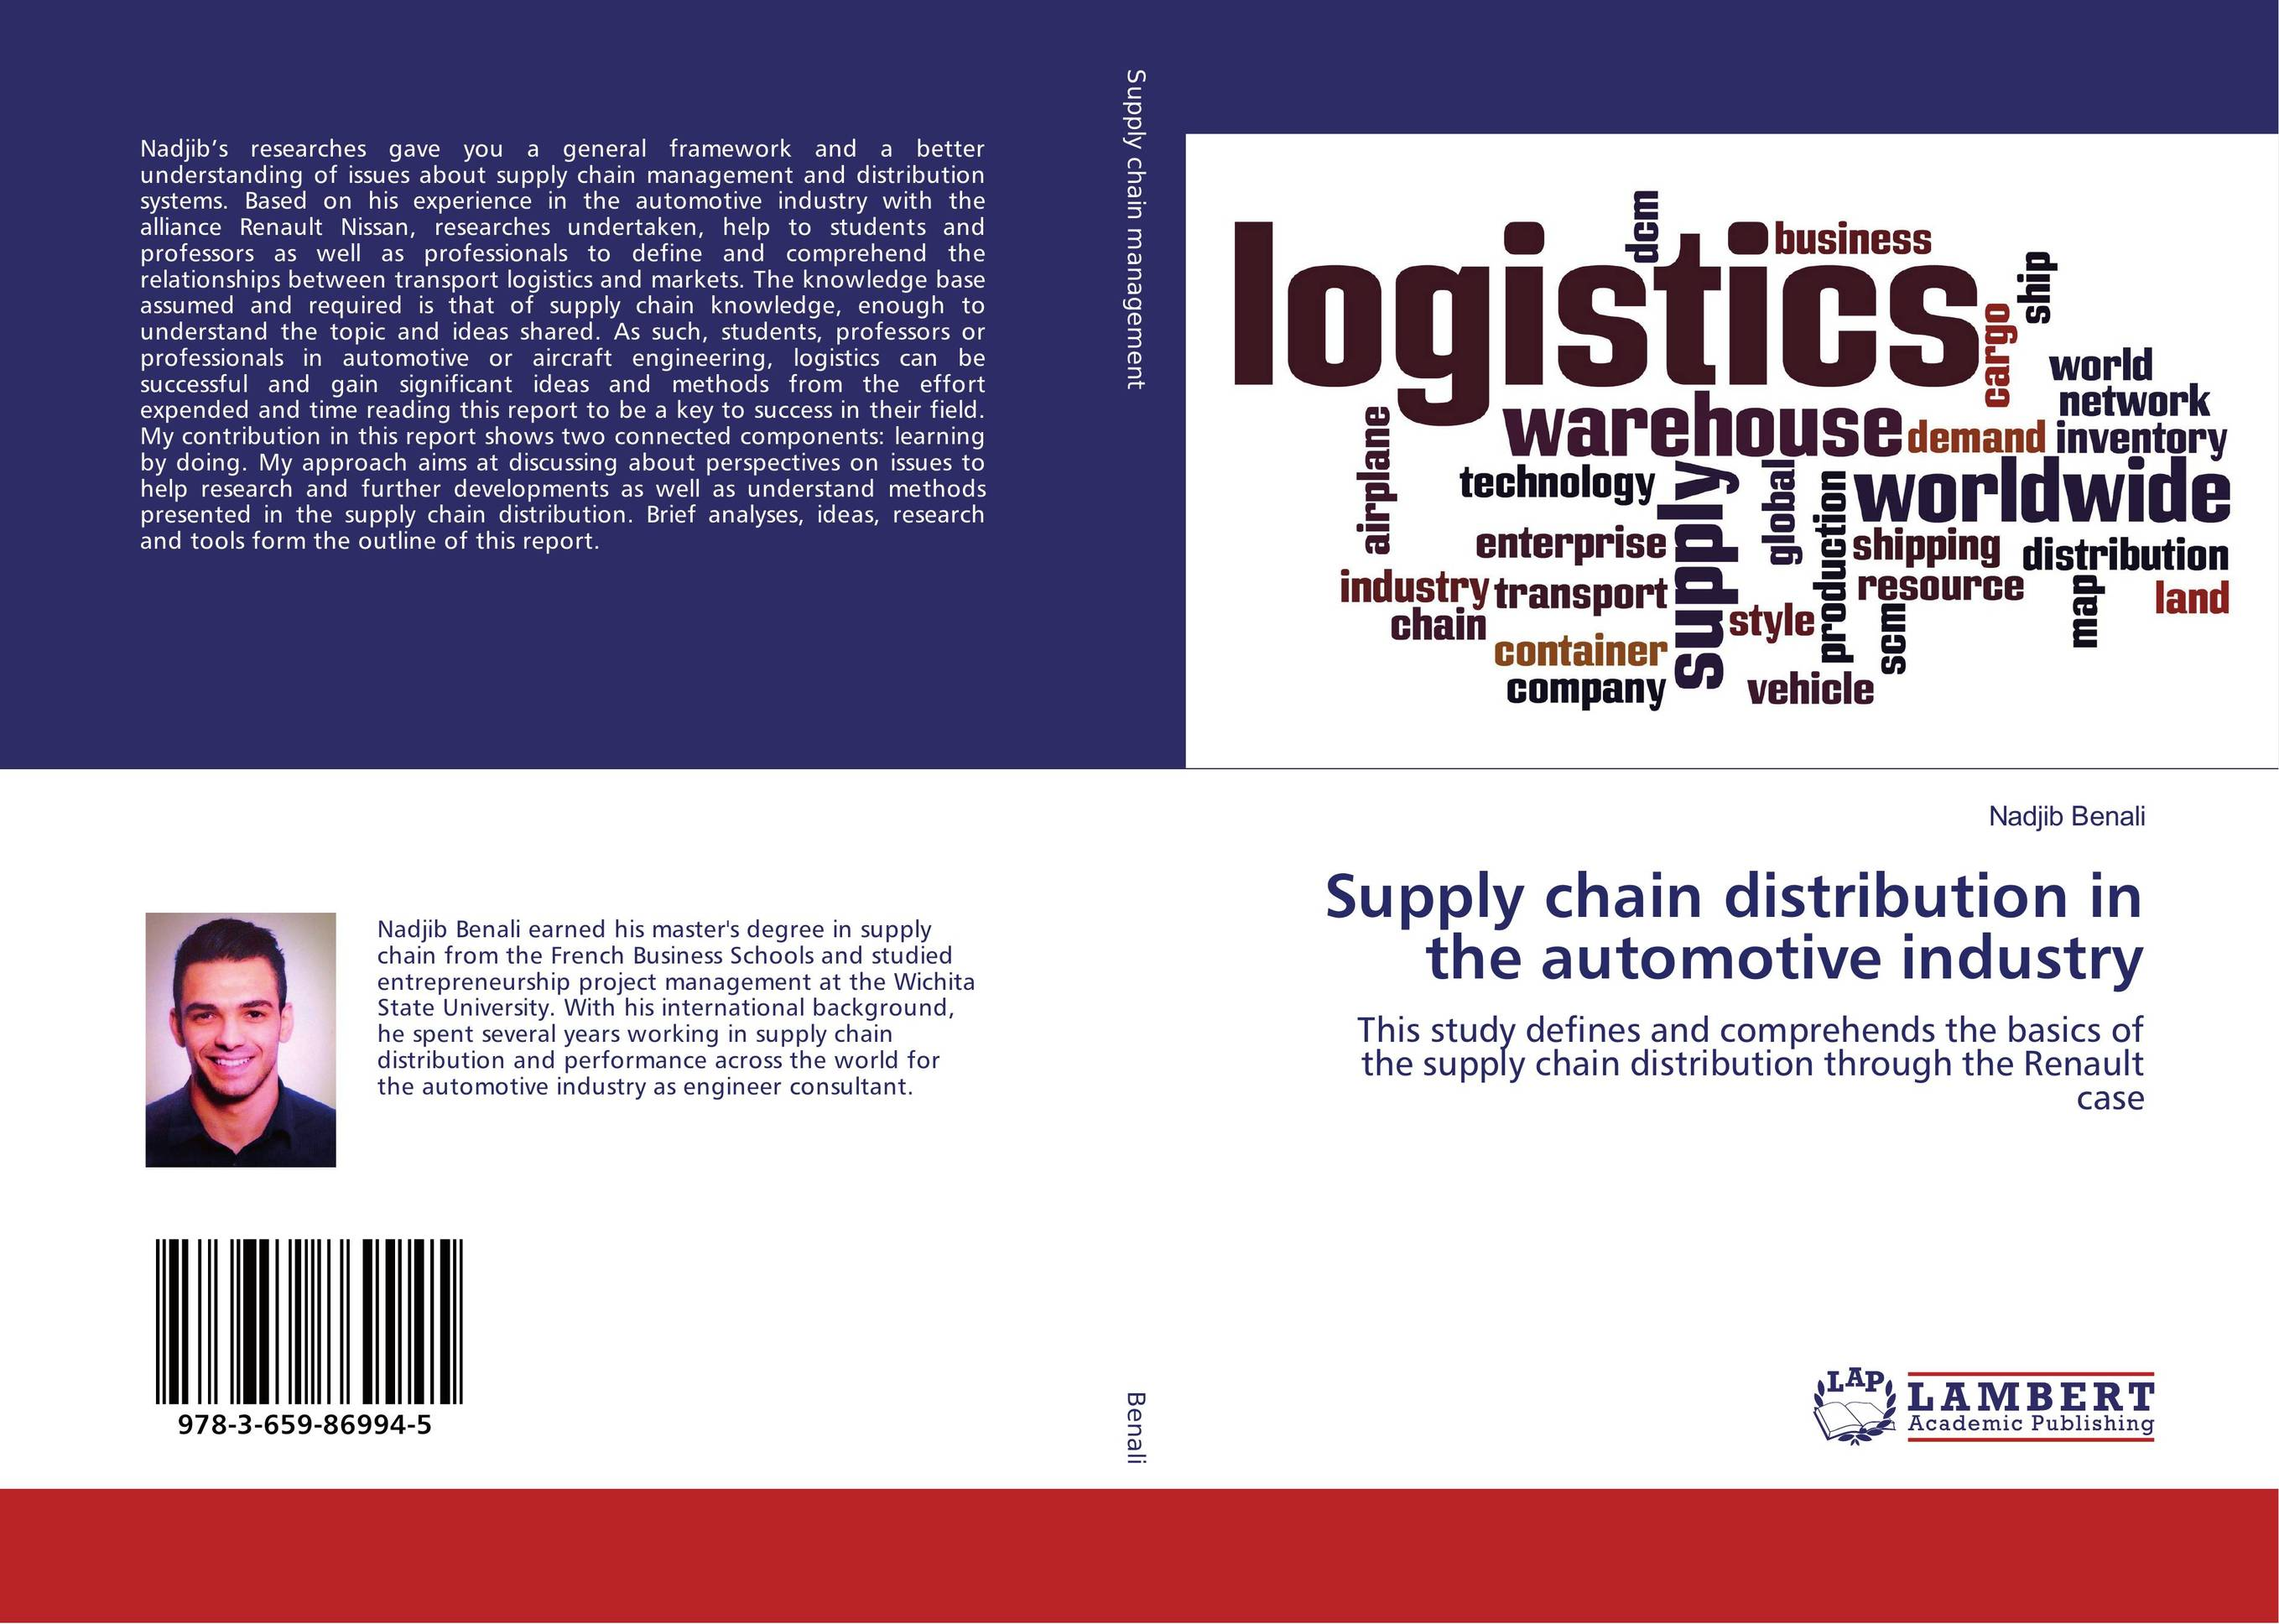 Supply chain distribution in the automotive industry